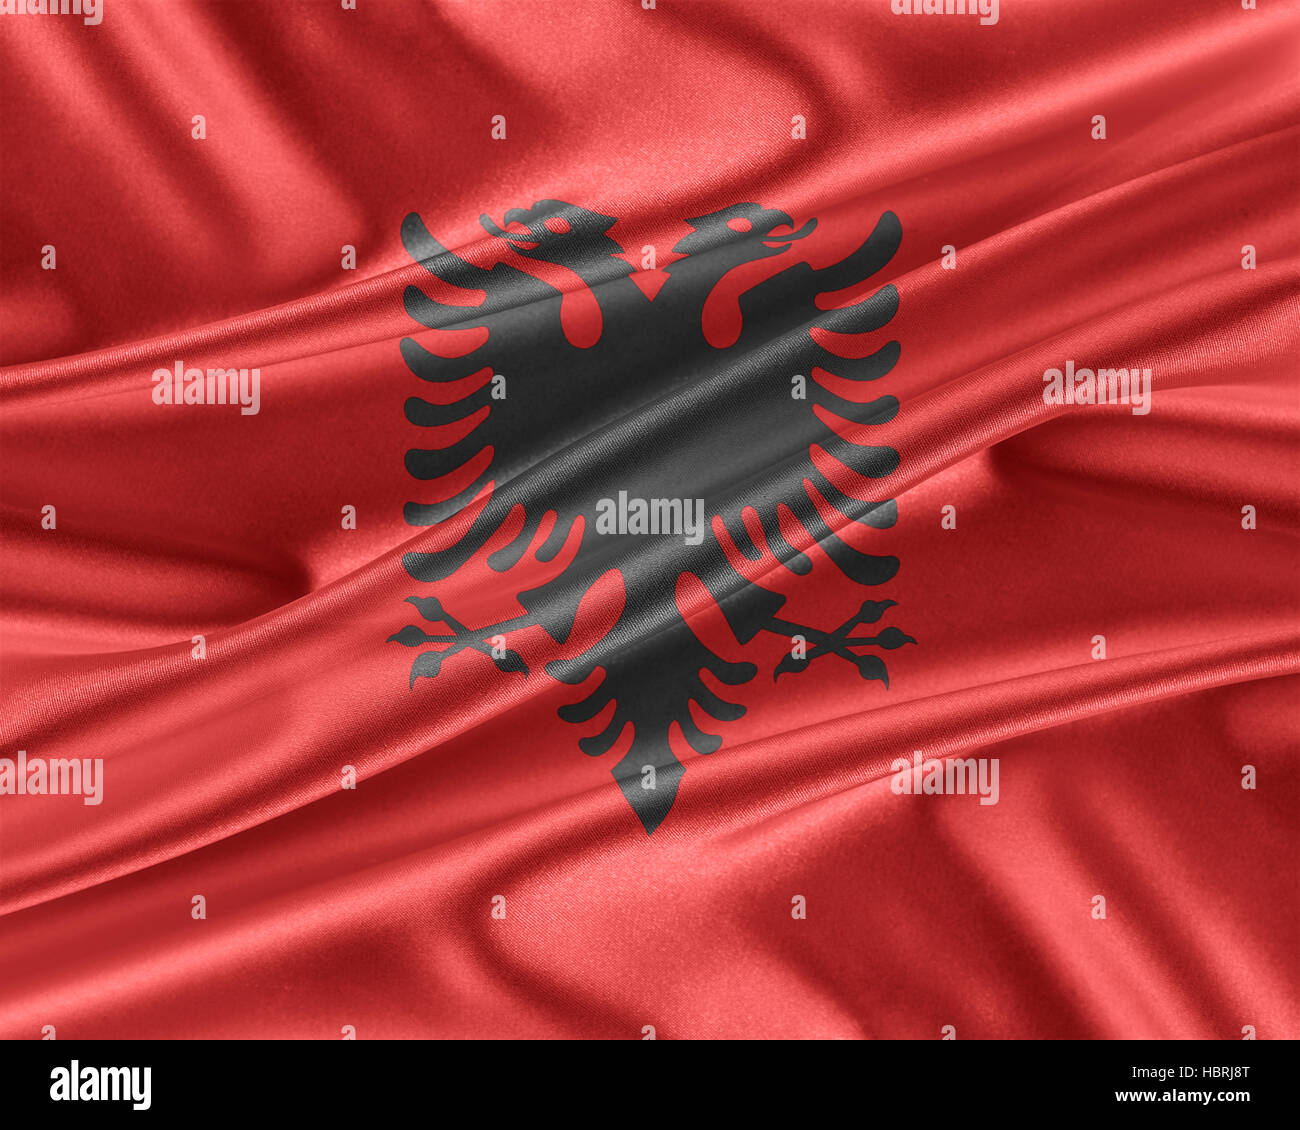 Albania flag with a glossy silk texture. - Stock Image